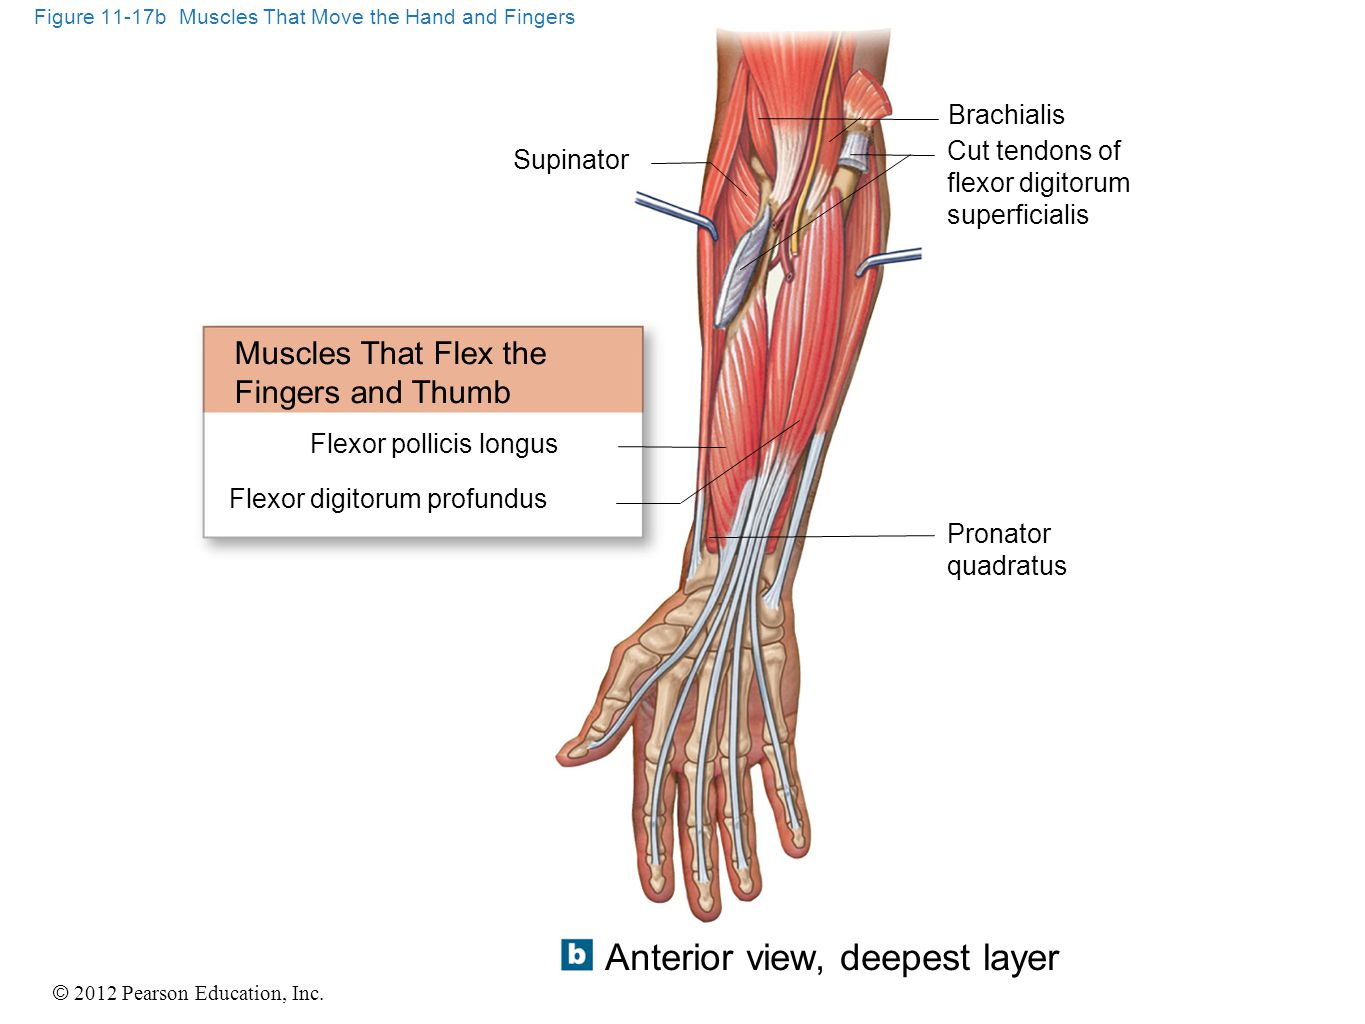 Figure 11-17b Muscles That Move the Hand and Fingers